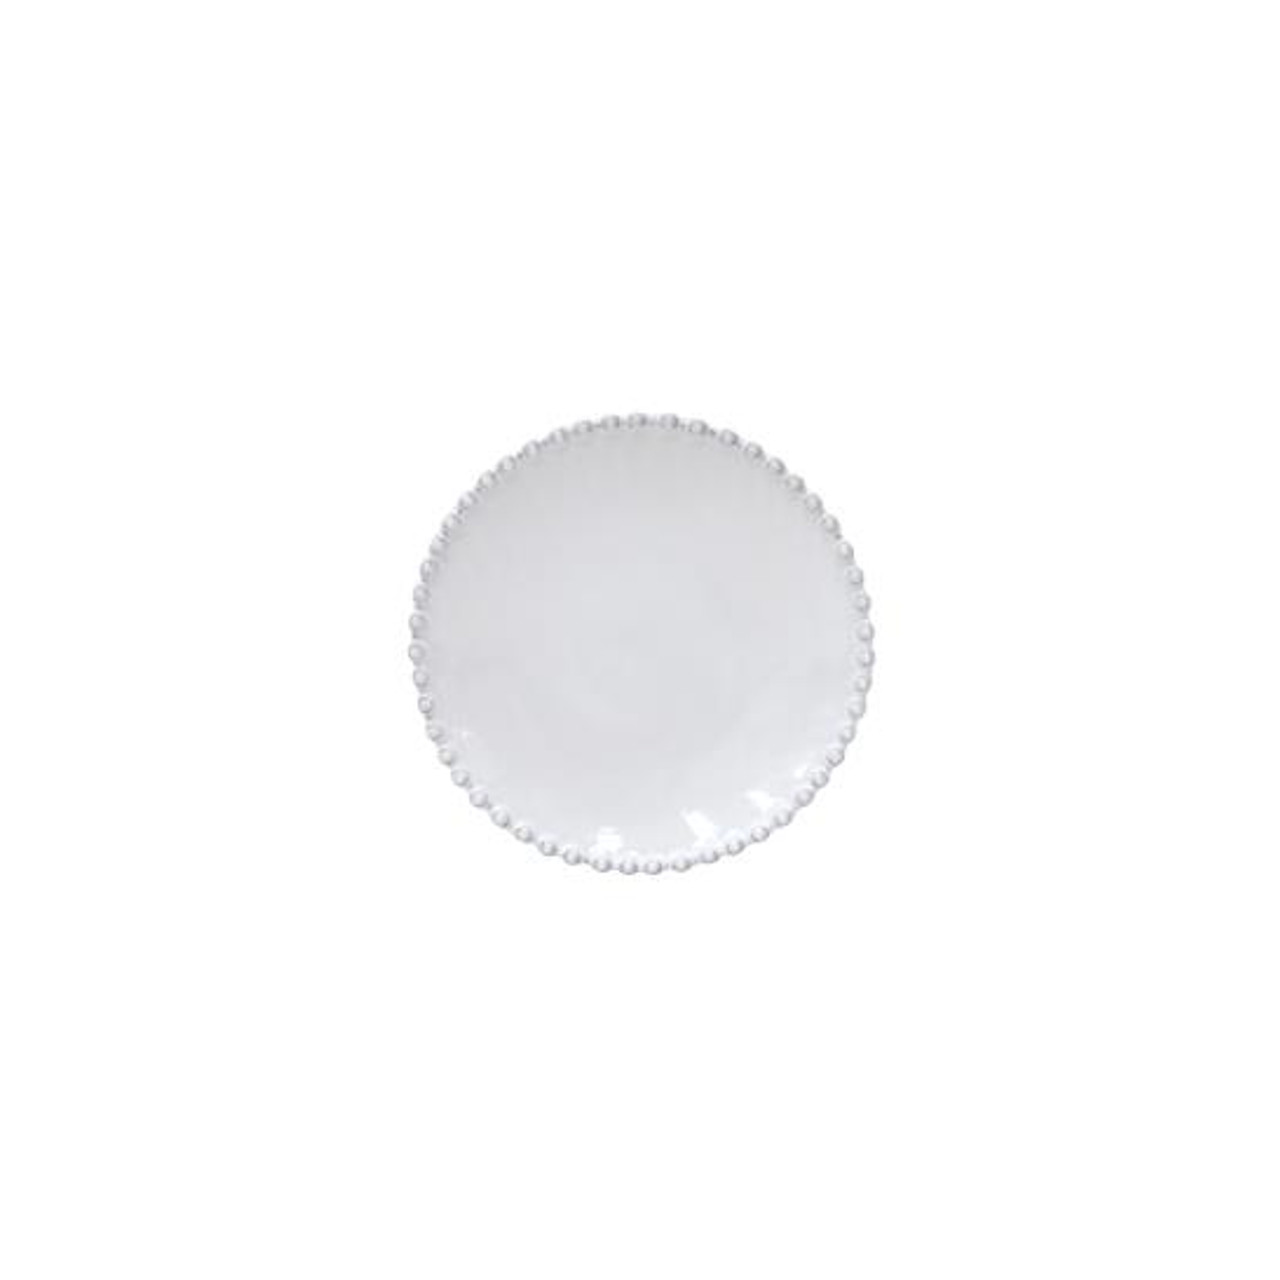 PEARL DINNER PLATE 28cm - WHITE